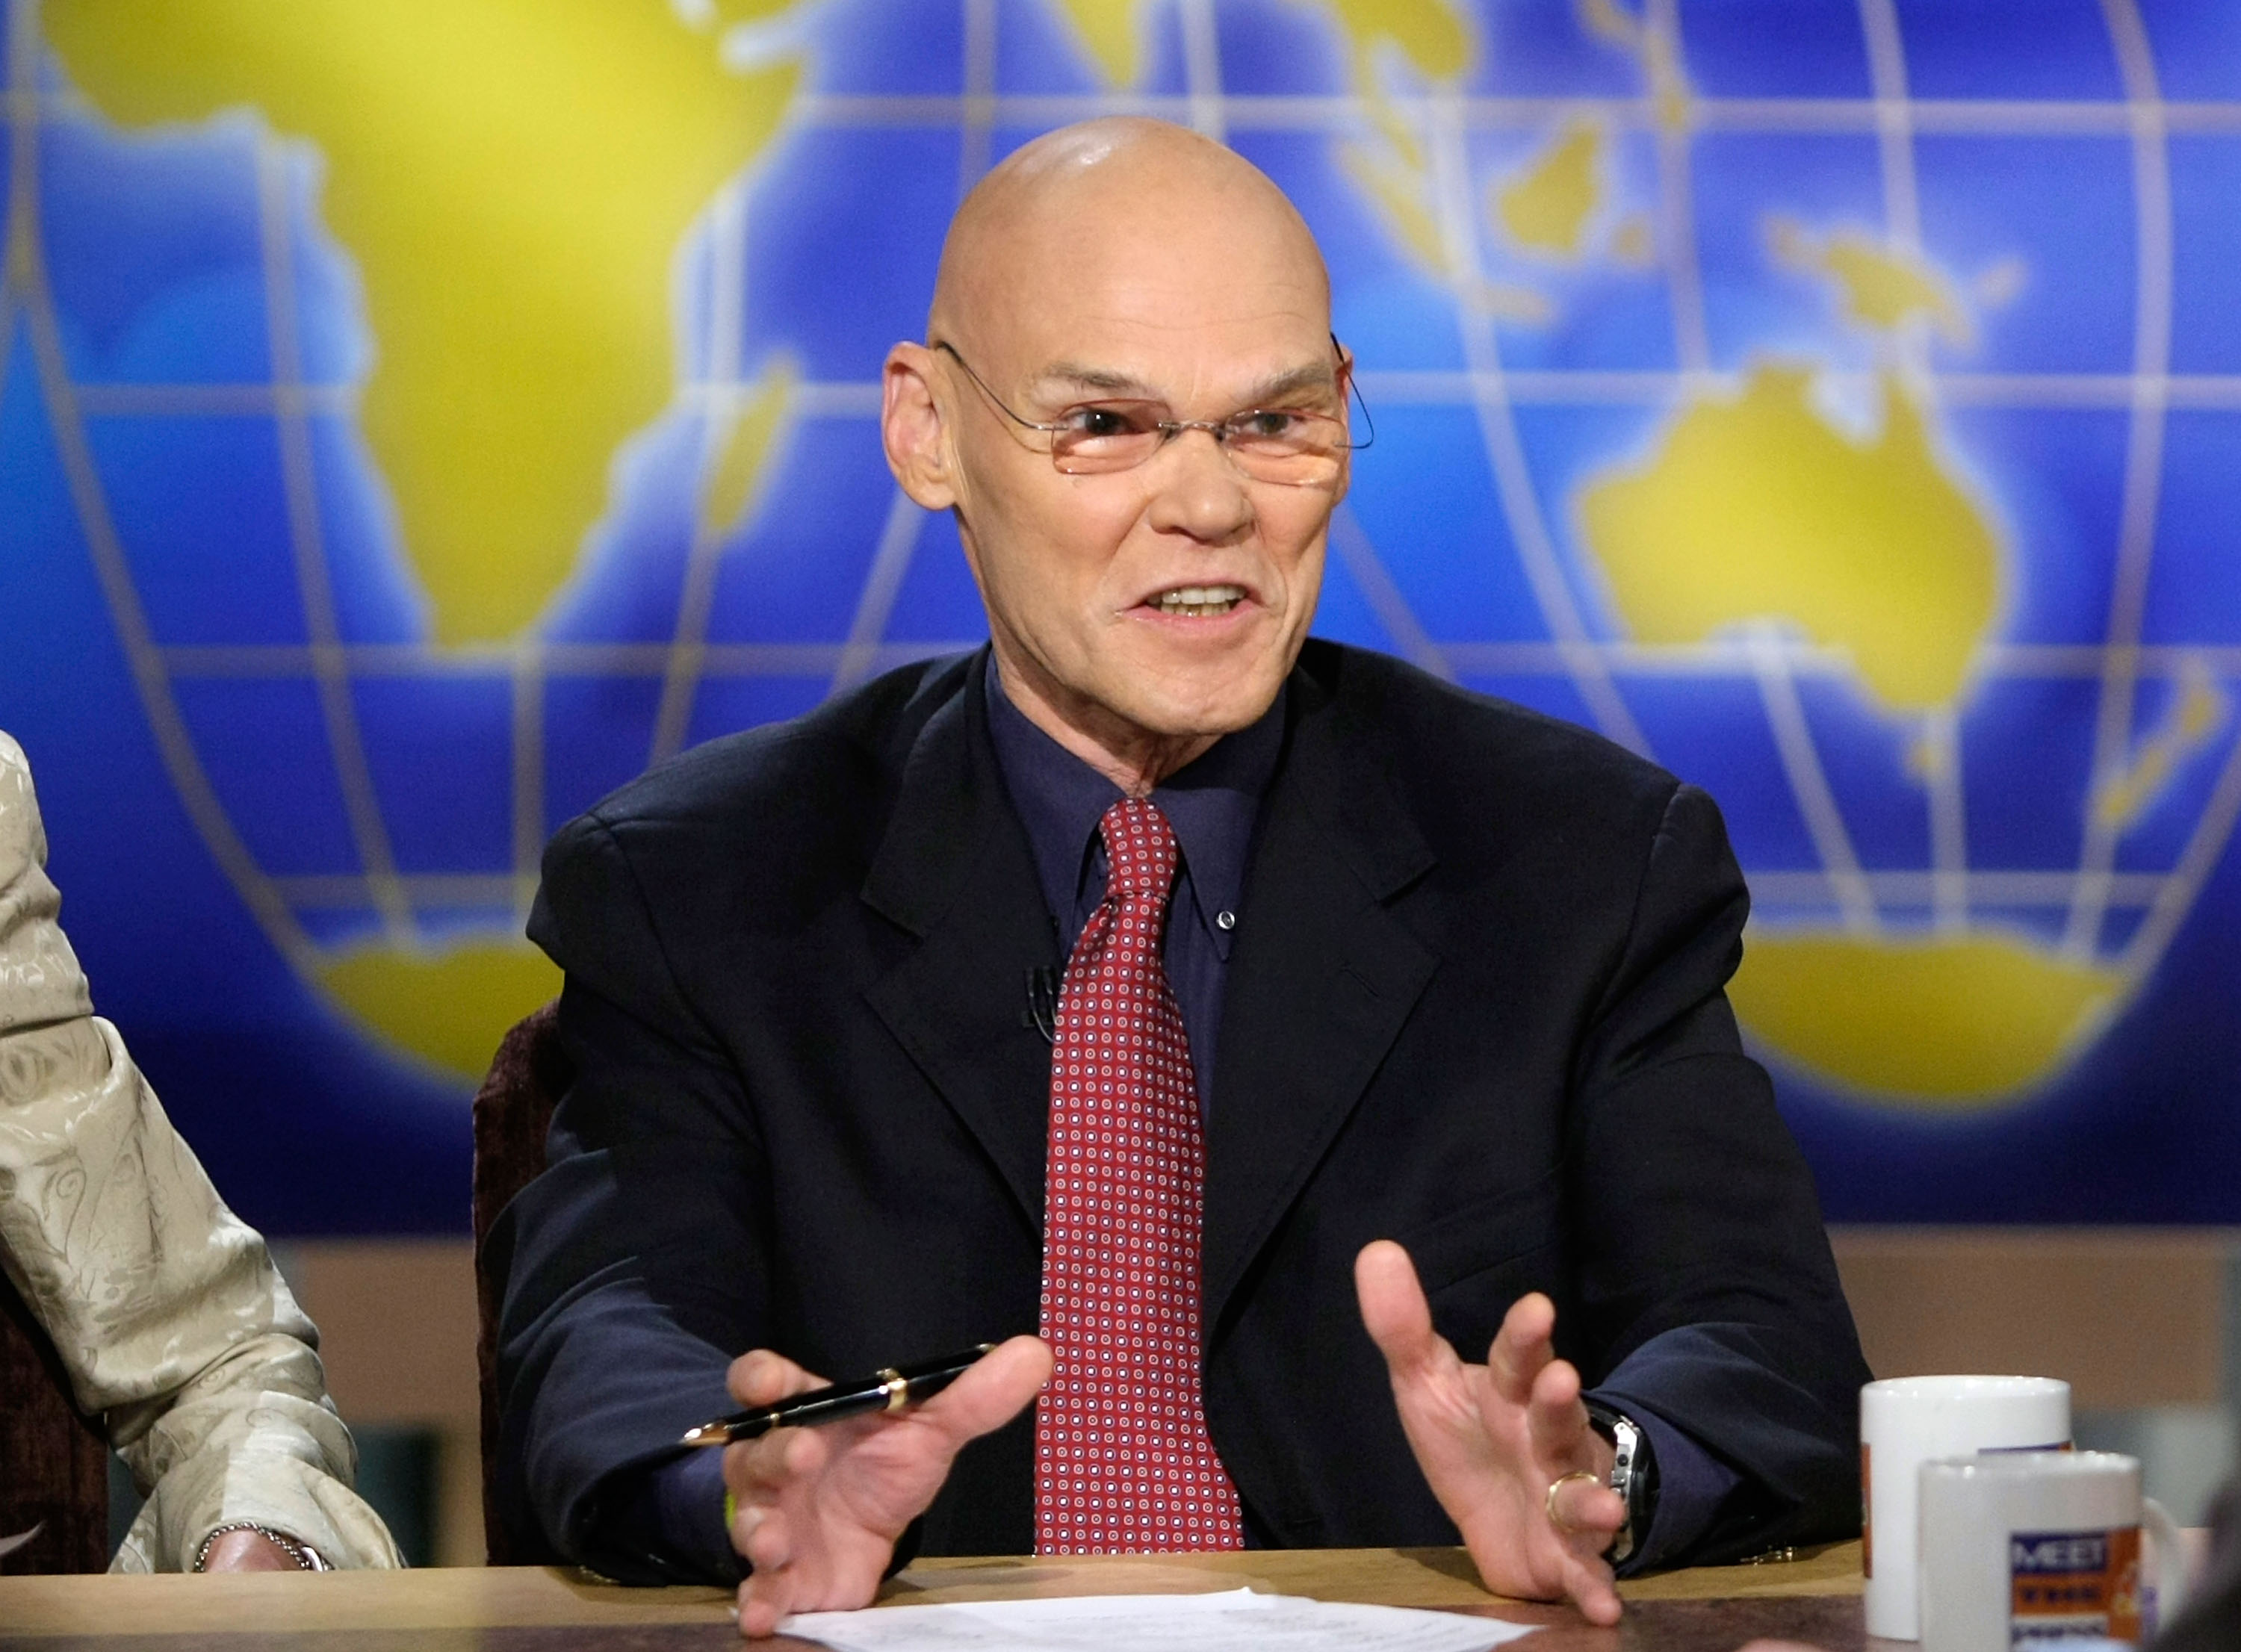 """It's the economy, stupid!"" James Carville's famous 1992 slogan."